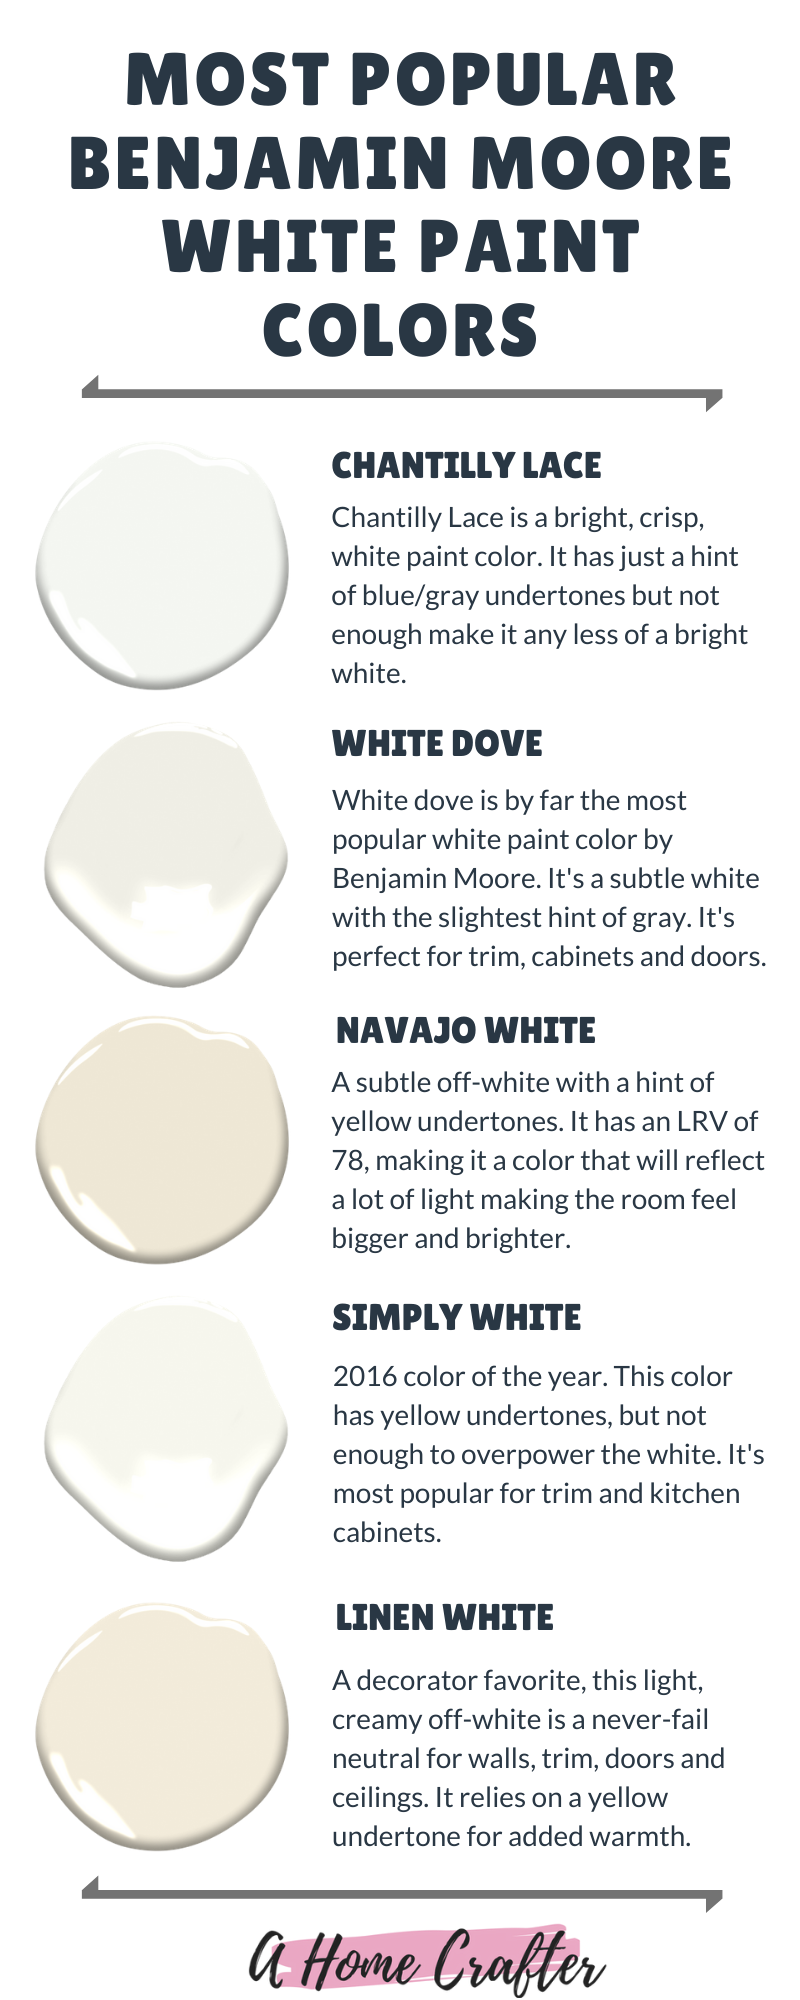 Best White Paint Colors for Trim, Cabinets and Furniture.   Best ...